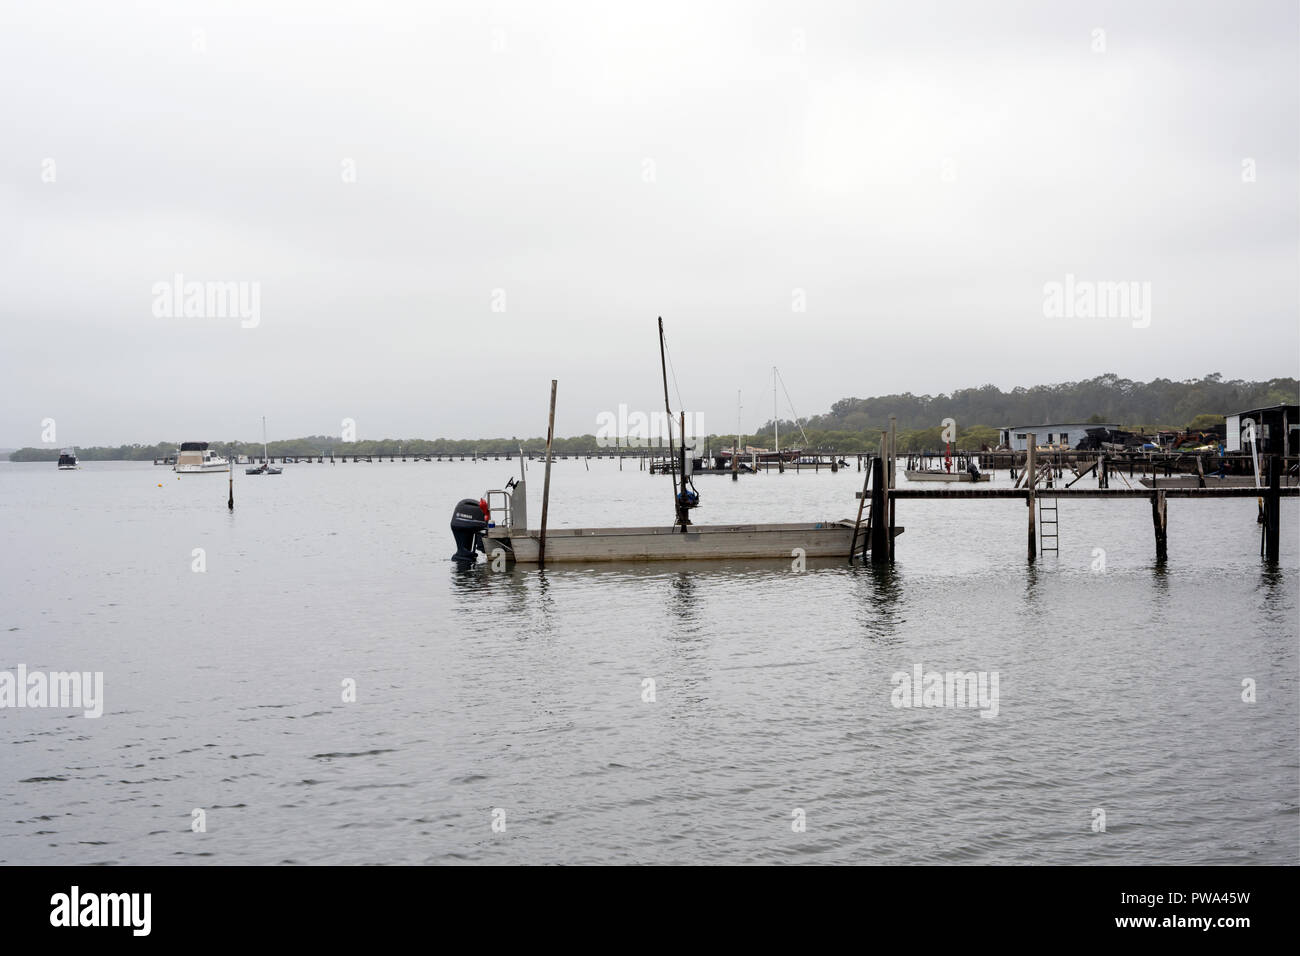 Aluminium Flat bottomed fishing boat tied up at old wooden pier. - Stock Image